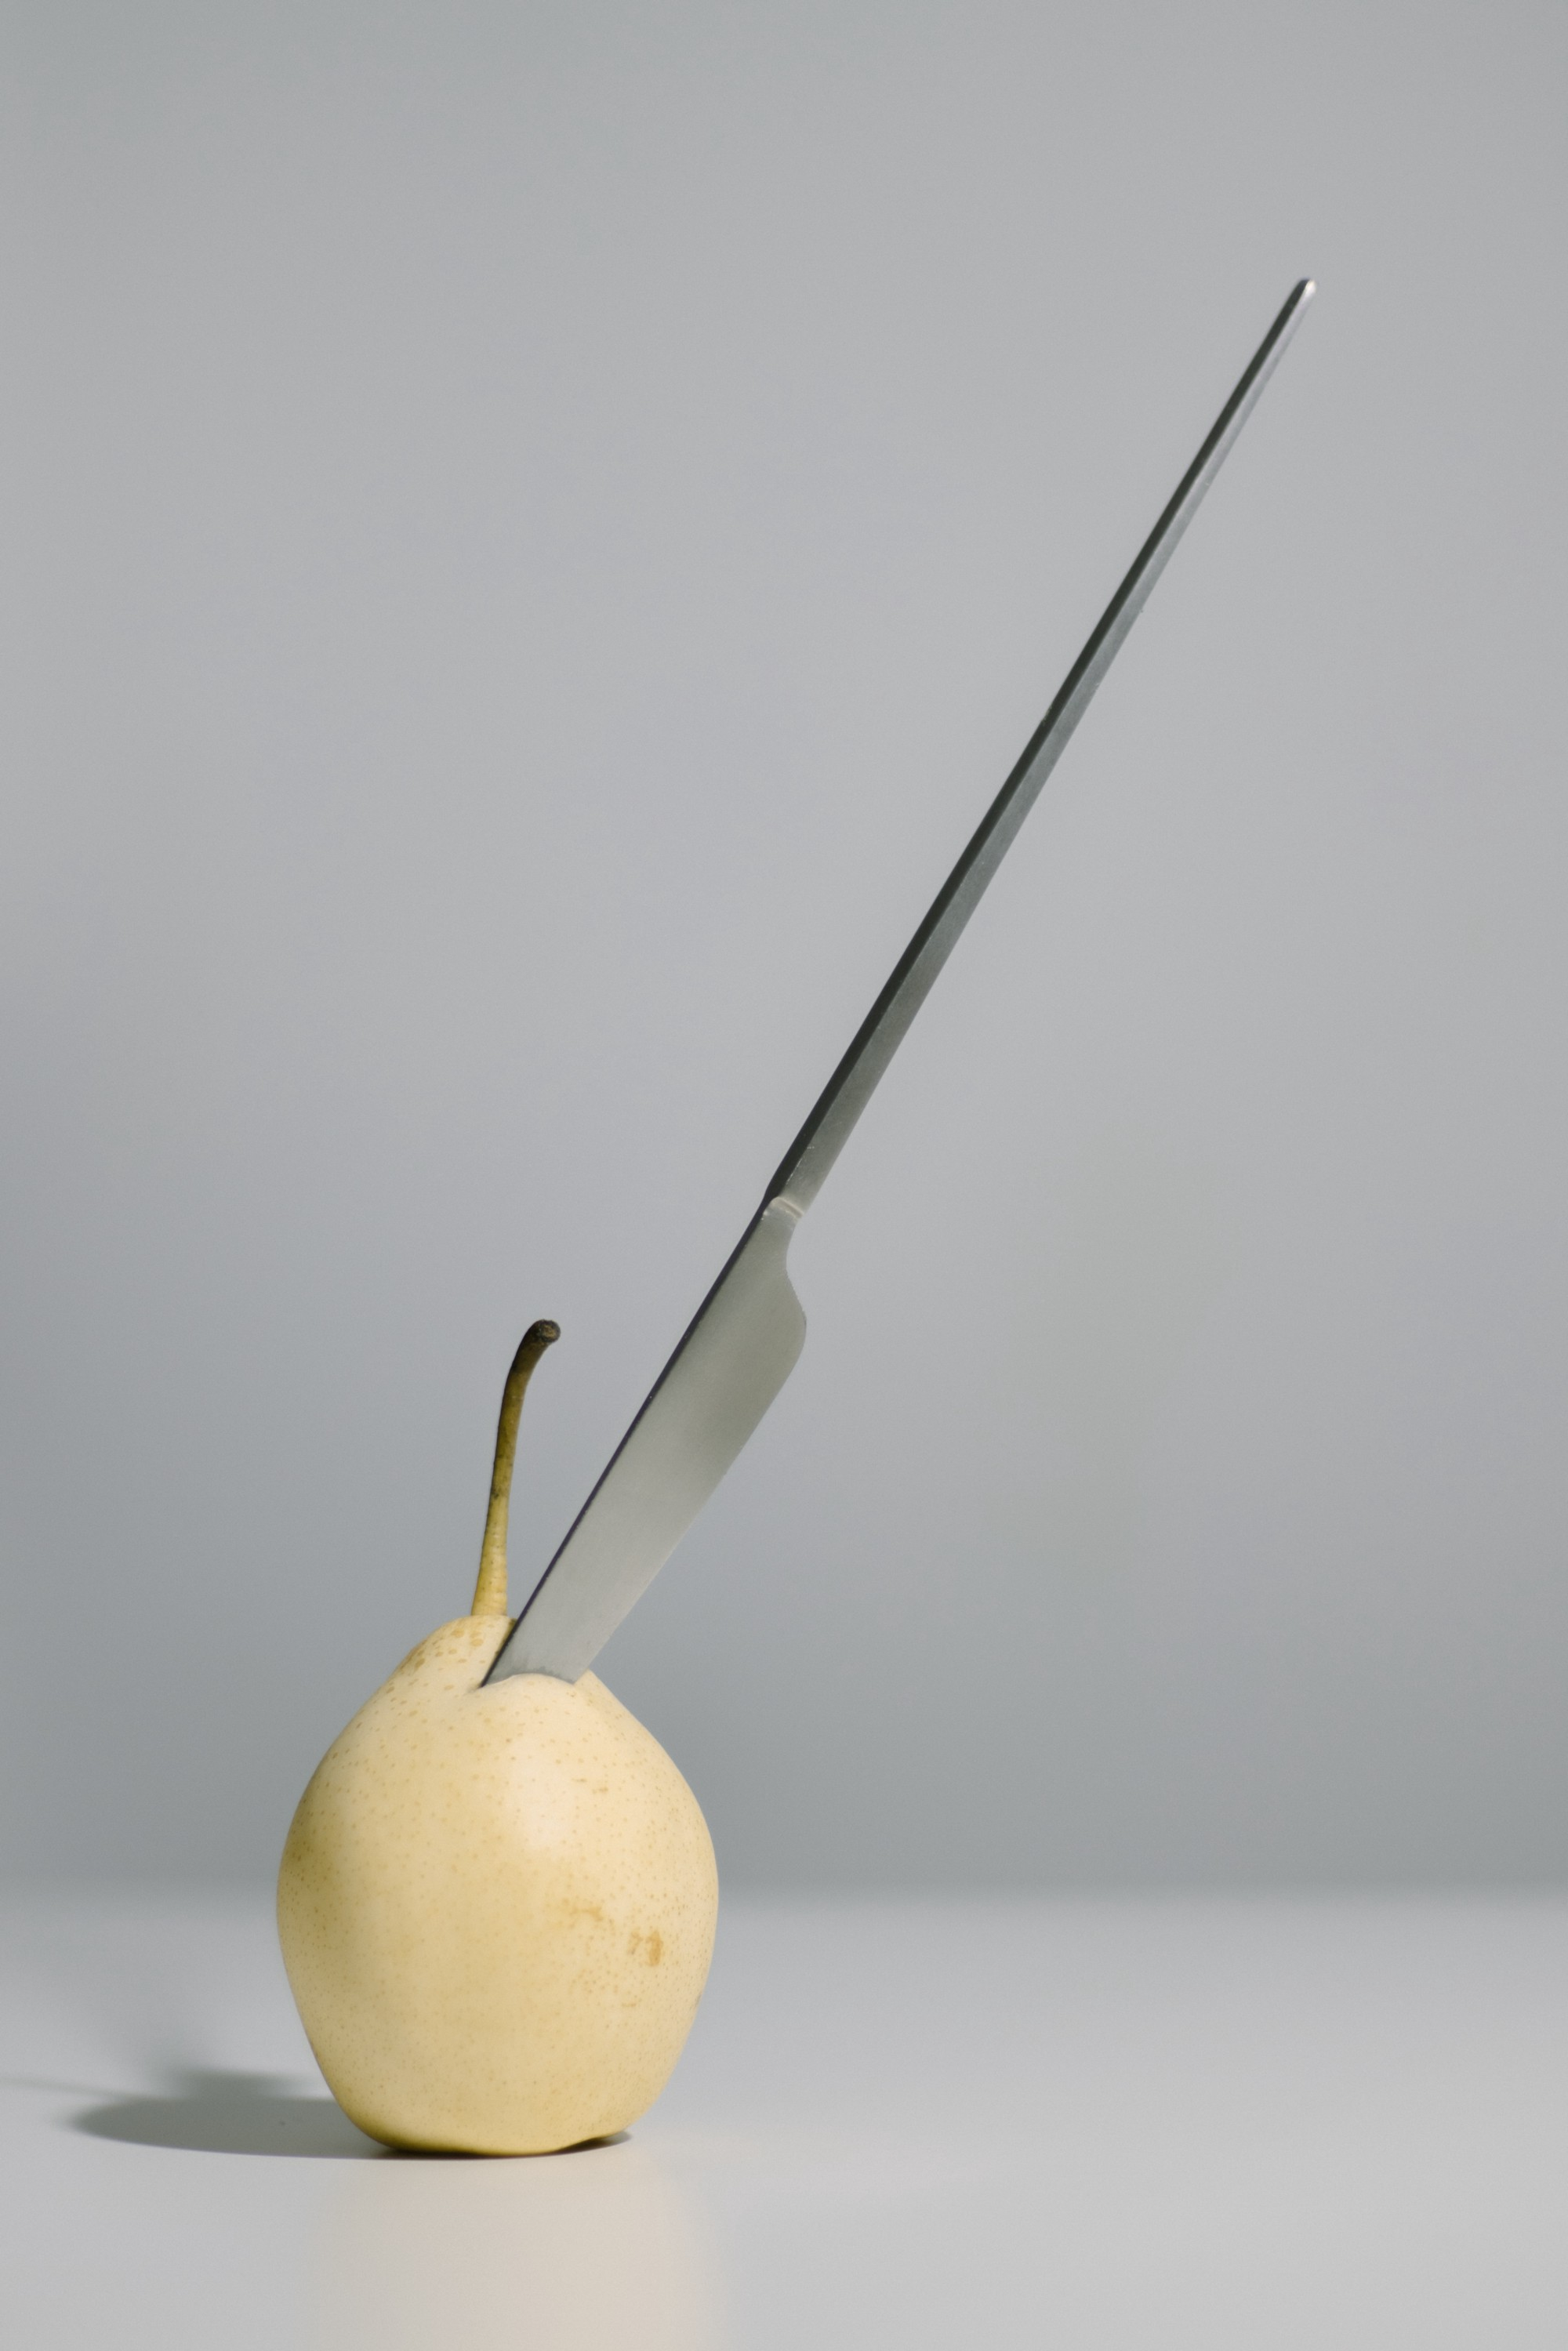 Food Research is Flawed: What's New? pic of pear with long piercing knife